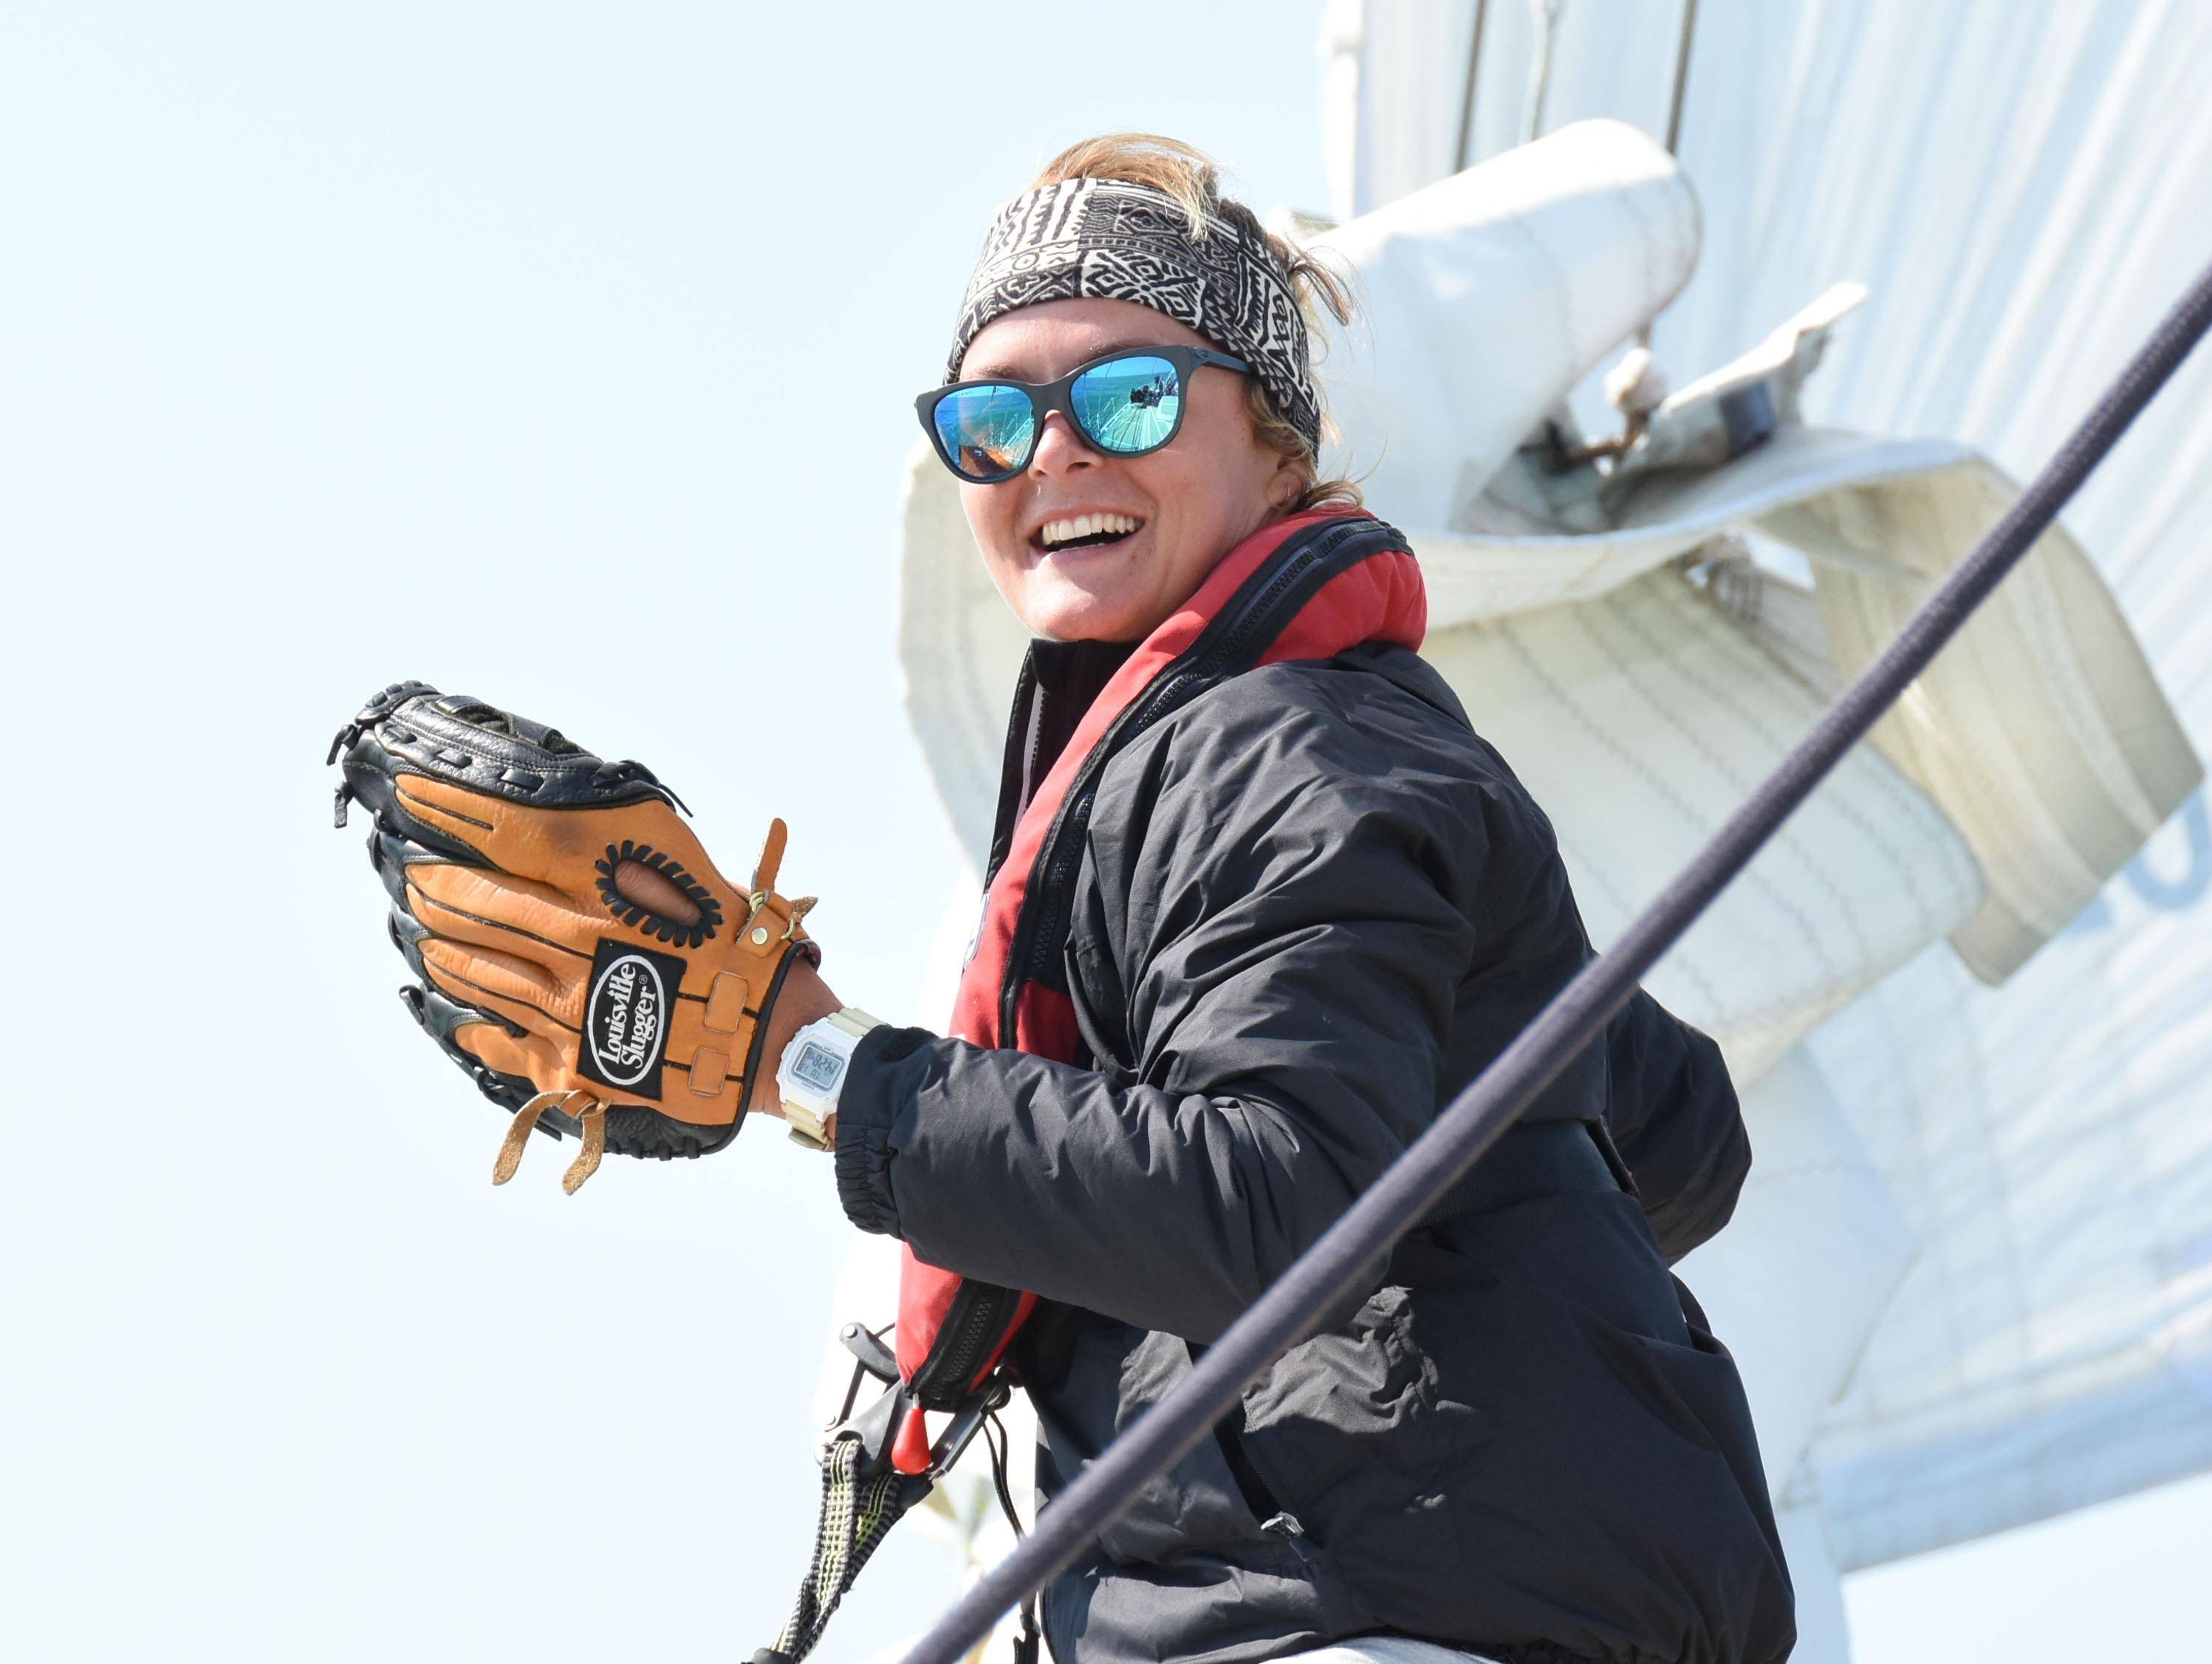 Nikki Henderson, who at age 24 is the Clipper Race's youngest ever skipper.